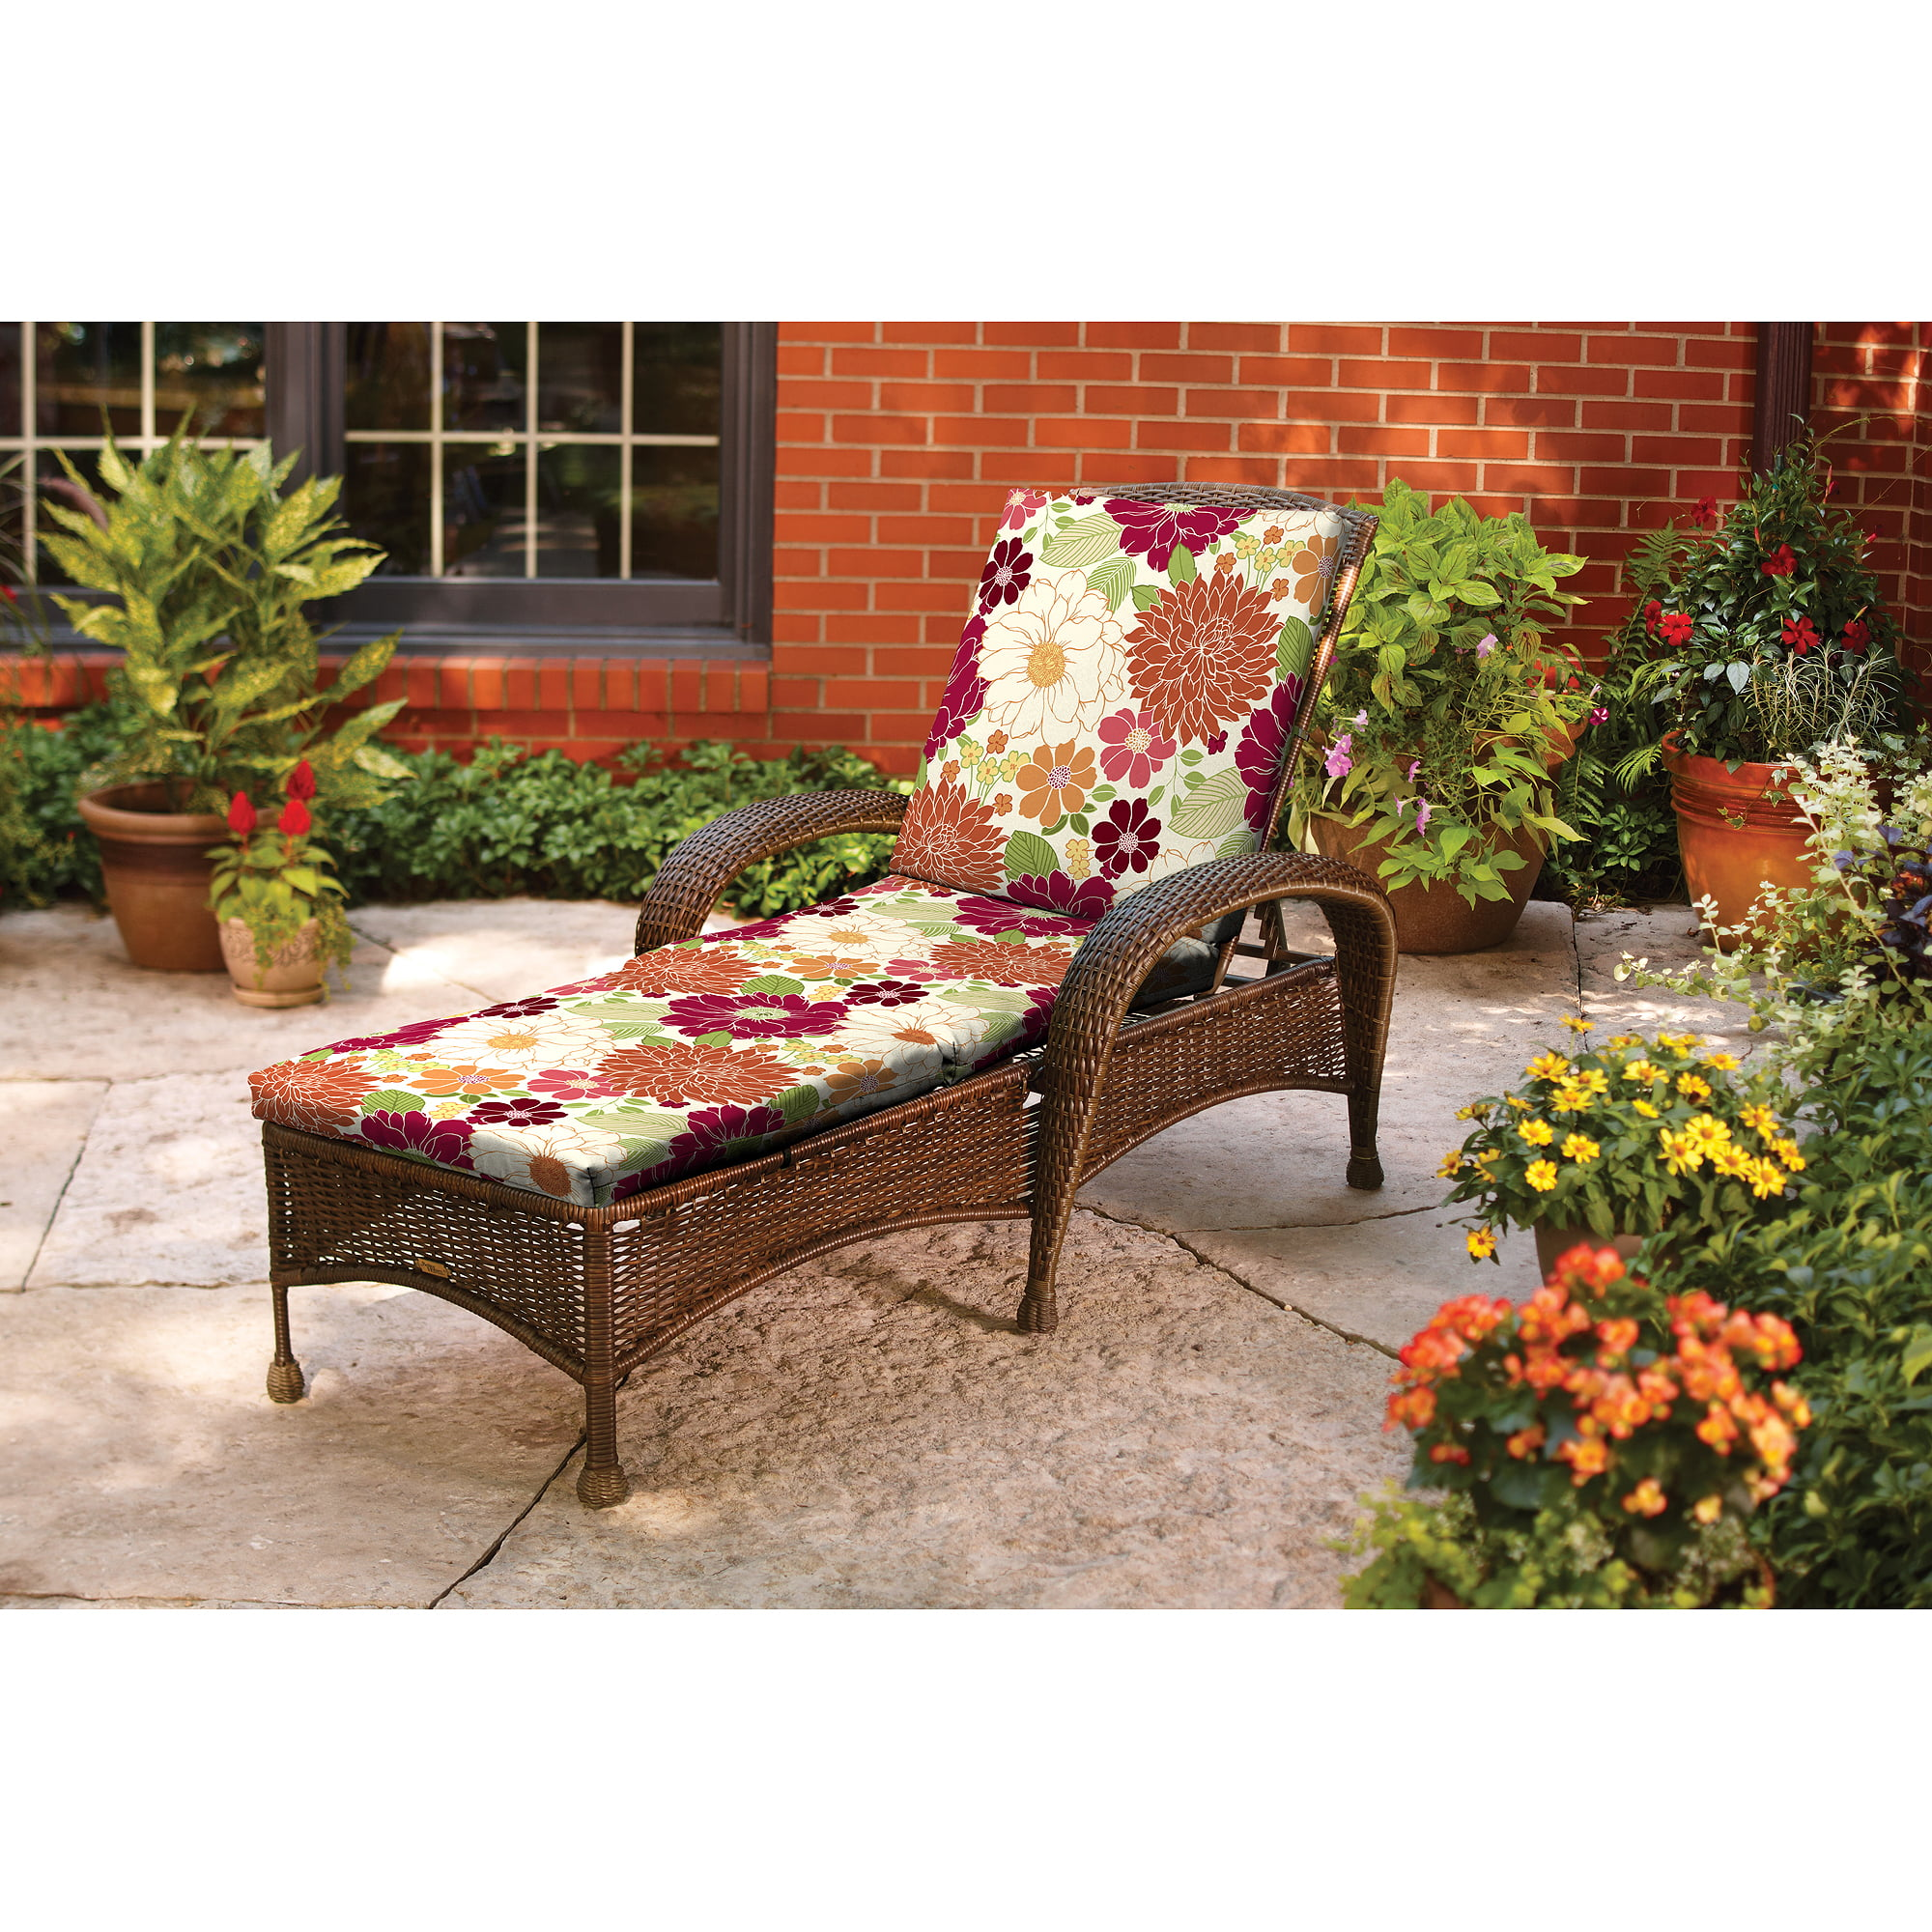 Better homes and gardens outdoor furniture cxpzinfo better for Better homes and gardens azalea ridge chaise lounge